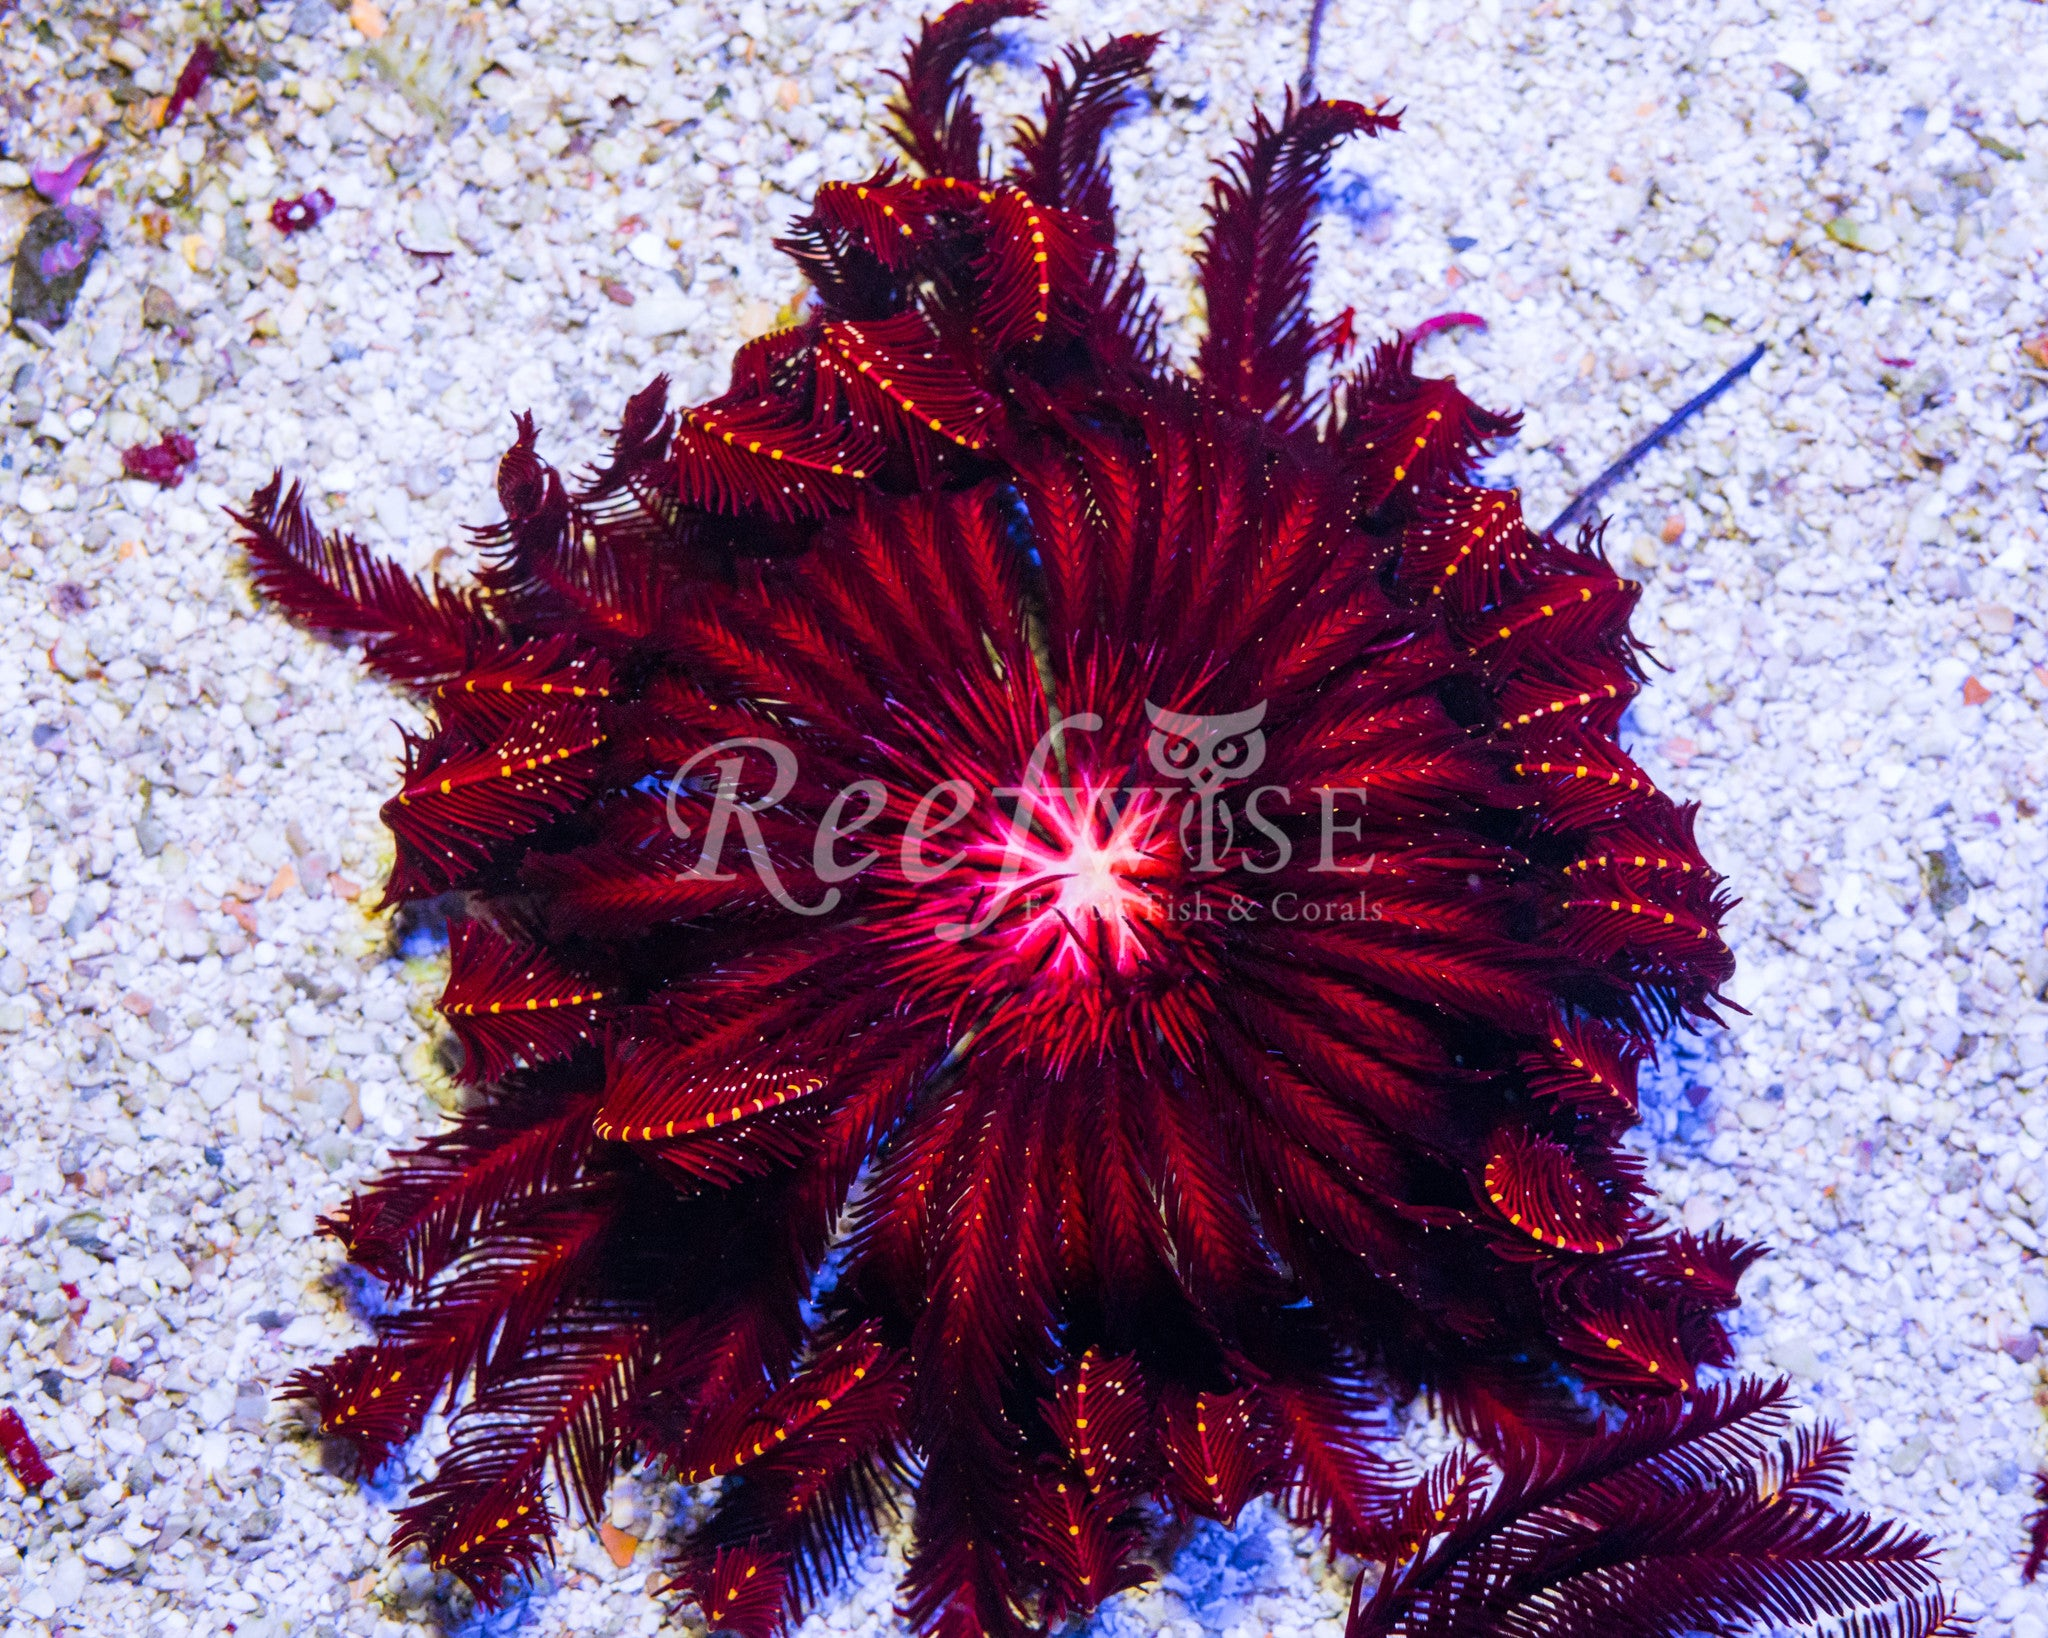 Red Crinoid Feather Star